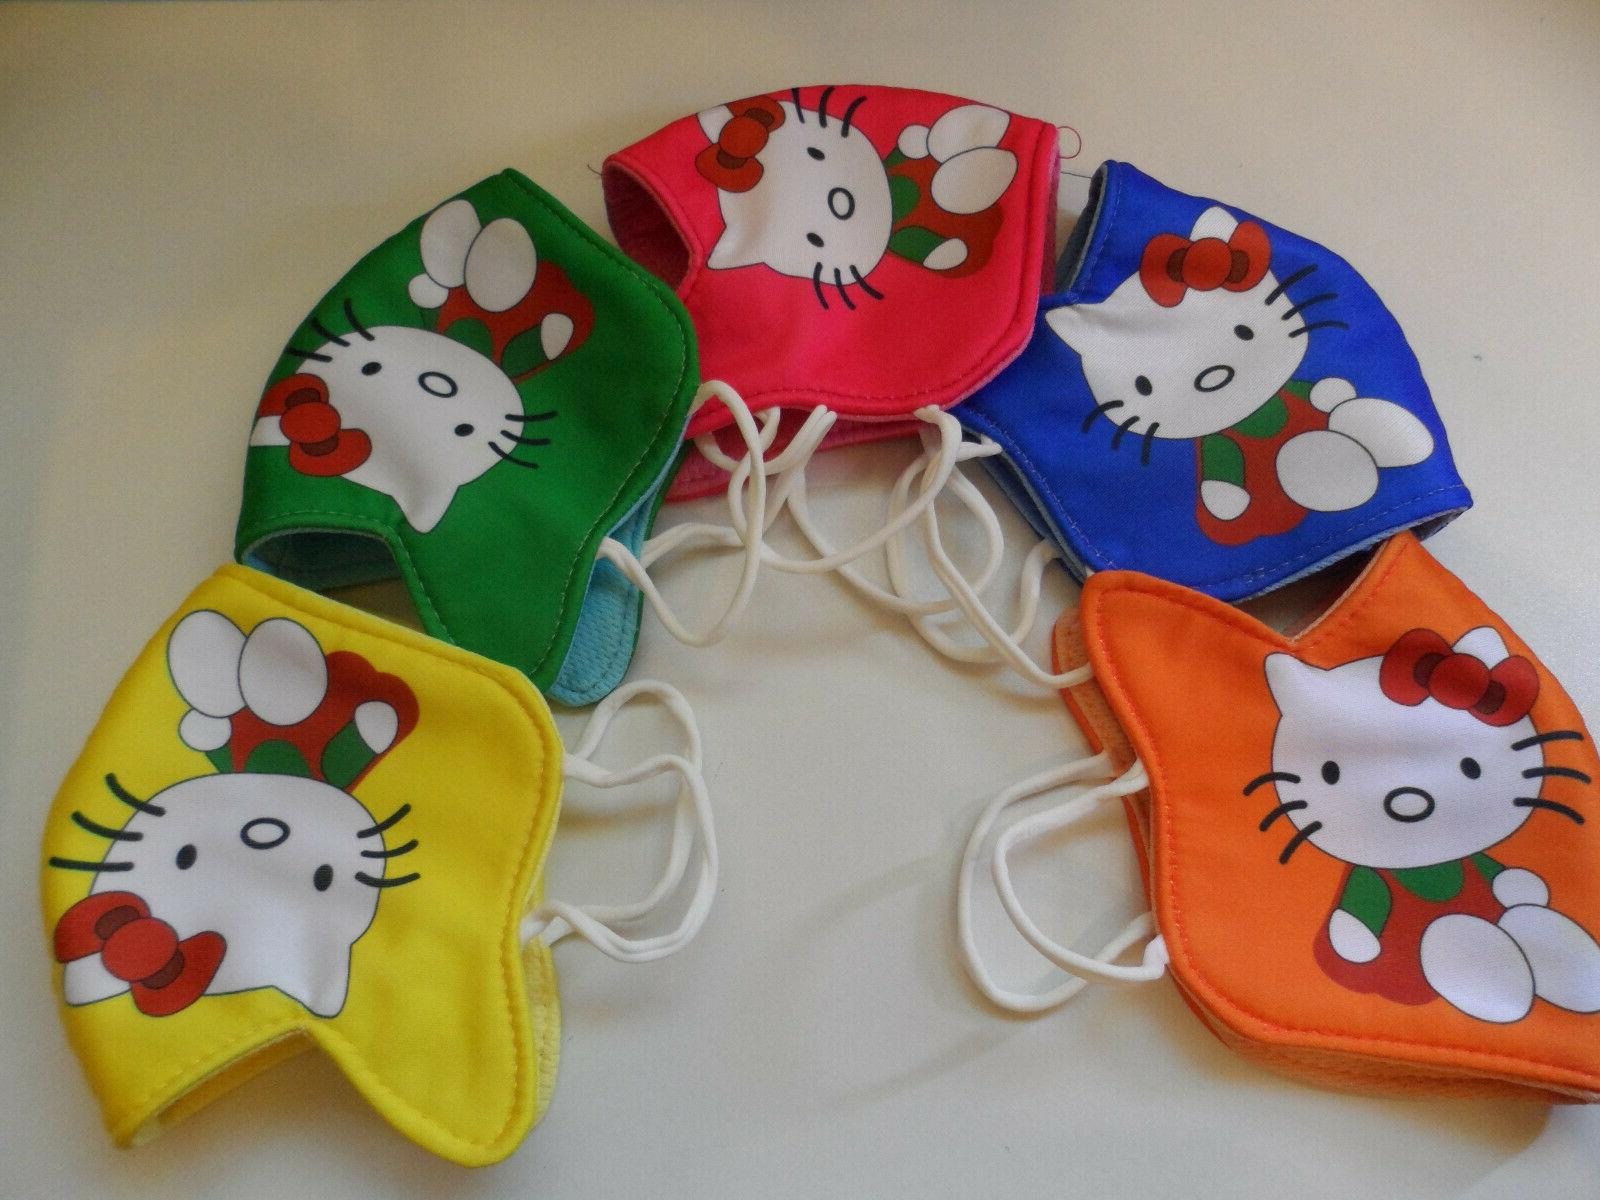 Face Mask Cotton Washable Reusable  for KID UNDER 10 YEARS O